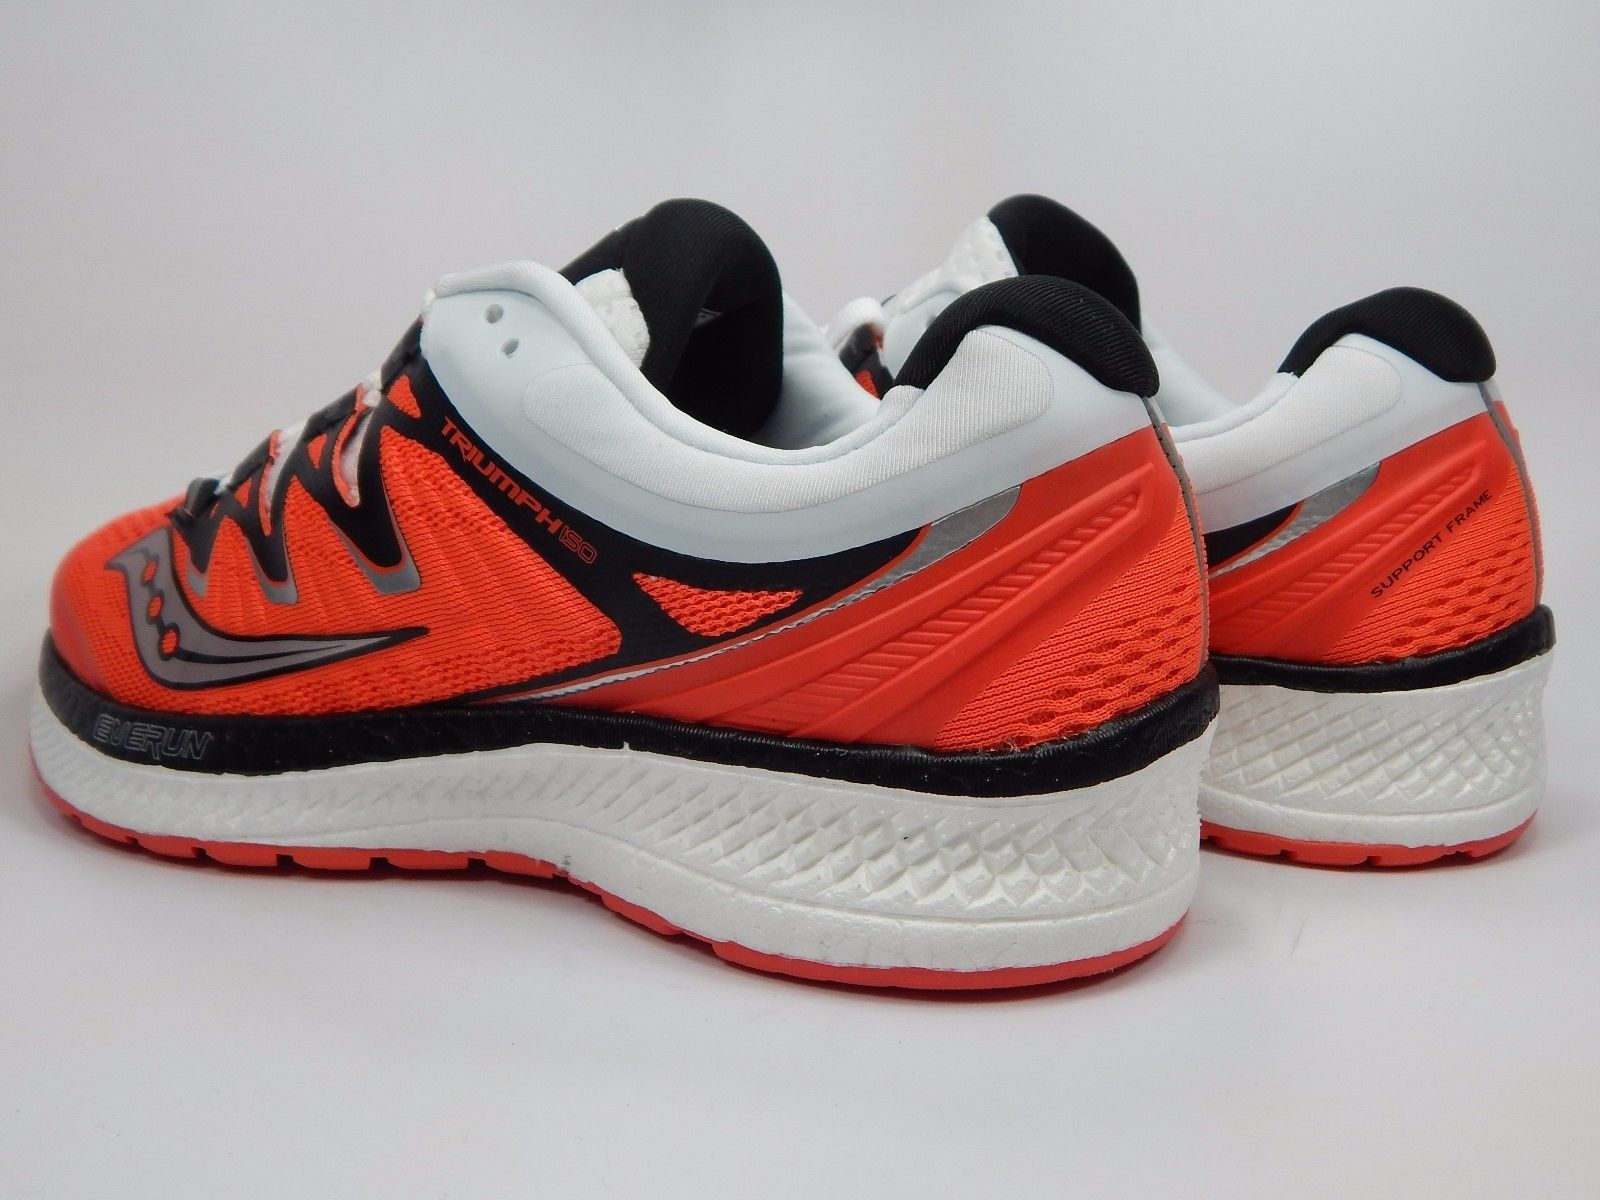 Saucony Triumph ISO 4 Women's Running Shoes Size US 8 M (B) EU 39 Red S10413-2